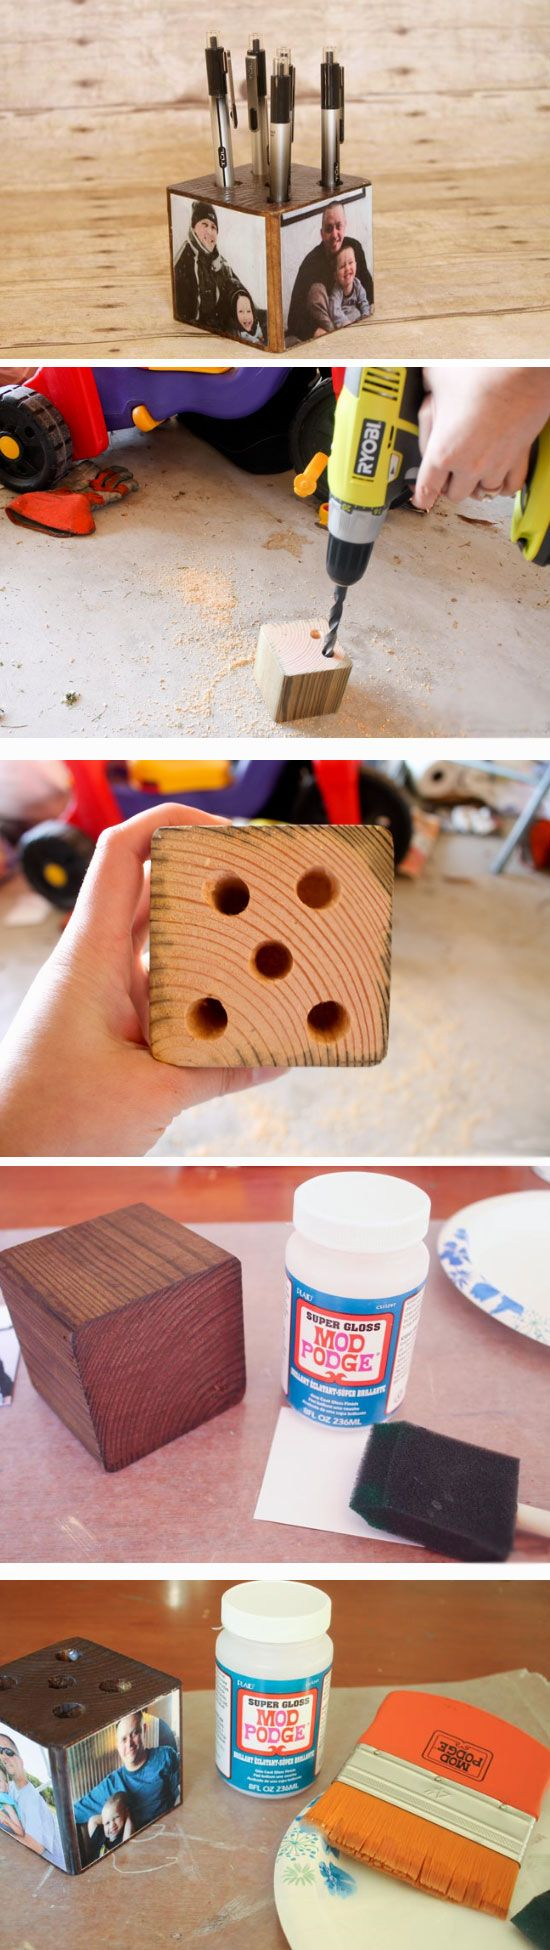 25 diy christmas gifts for dads grandfathers mod podge rocks photo pen holder 25 diy christmas gifts for dads grandfathers solutioingenieria Gallery